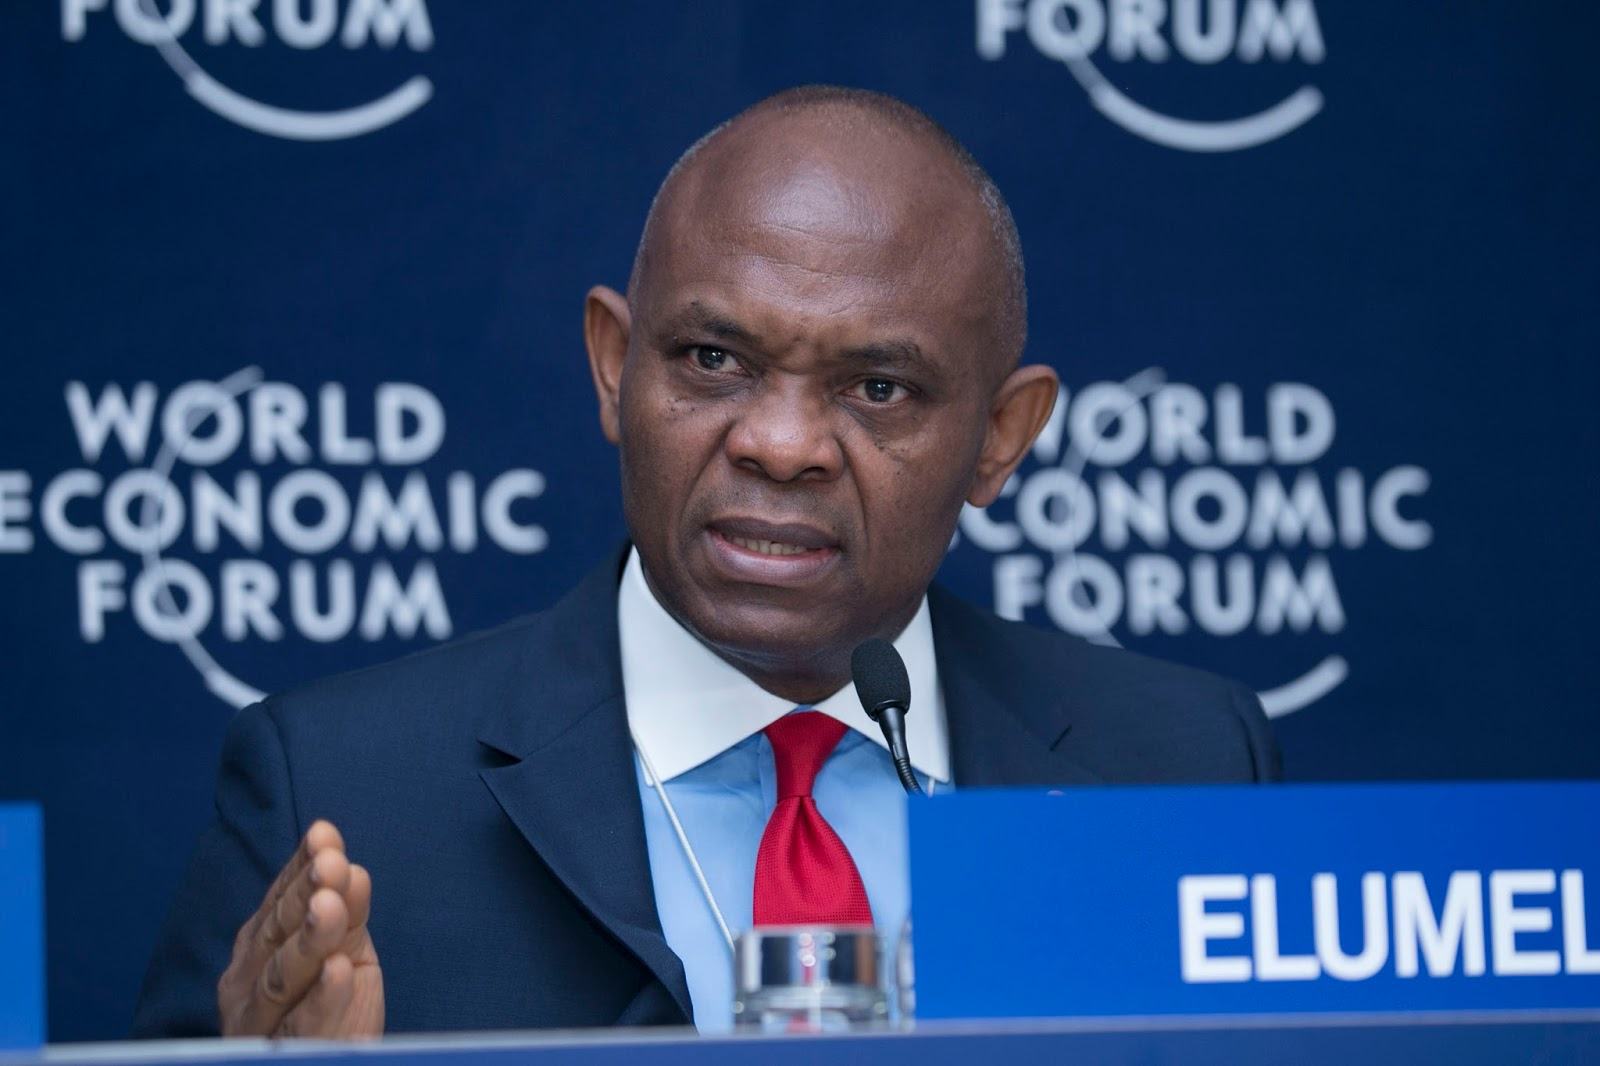 Tony Elumelu, the chairman, United Bank for Africa (UBA) Plc, and founder, Tony Elumelu Foundation